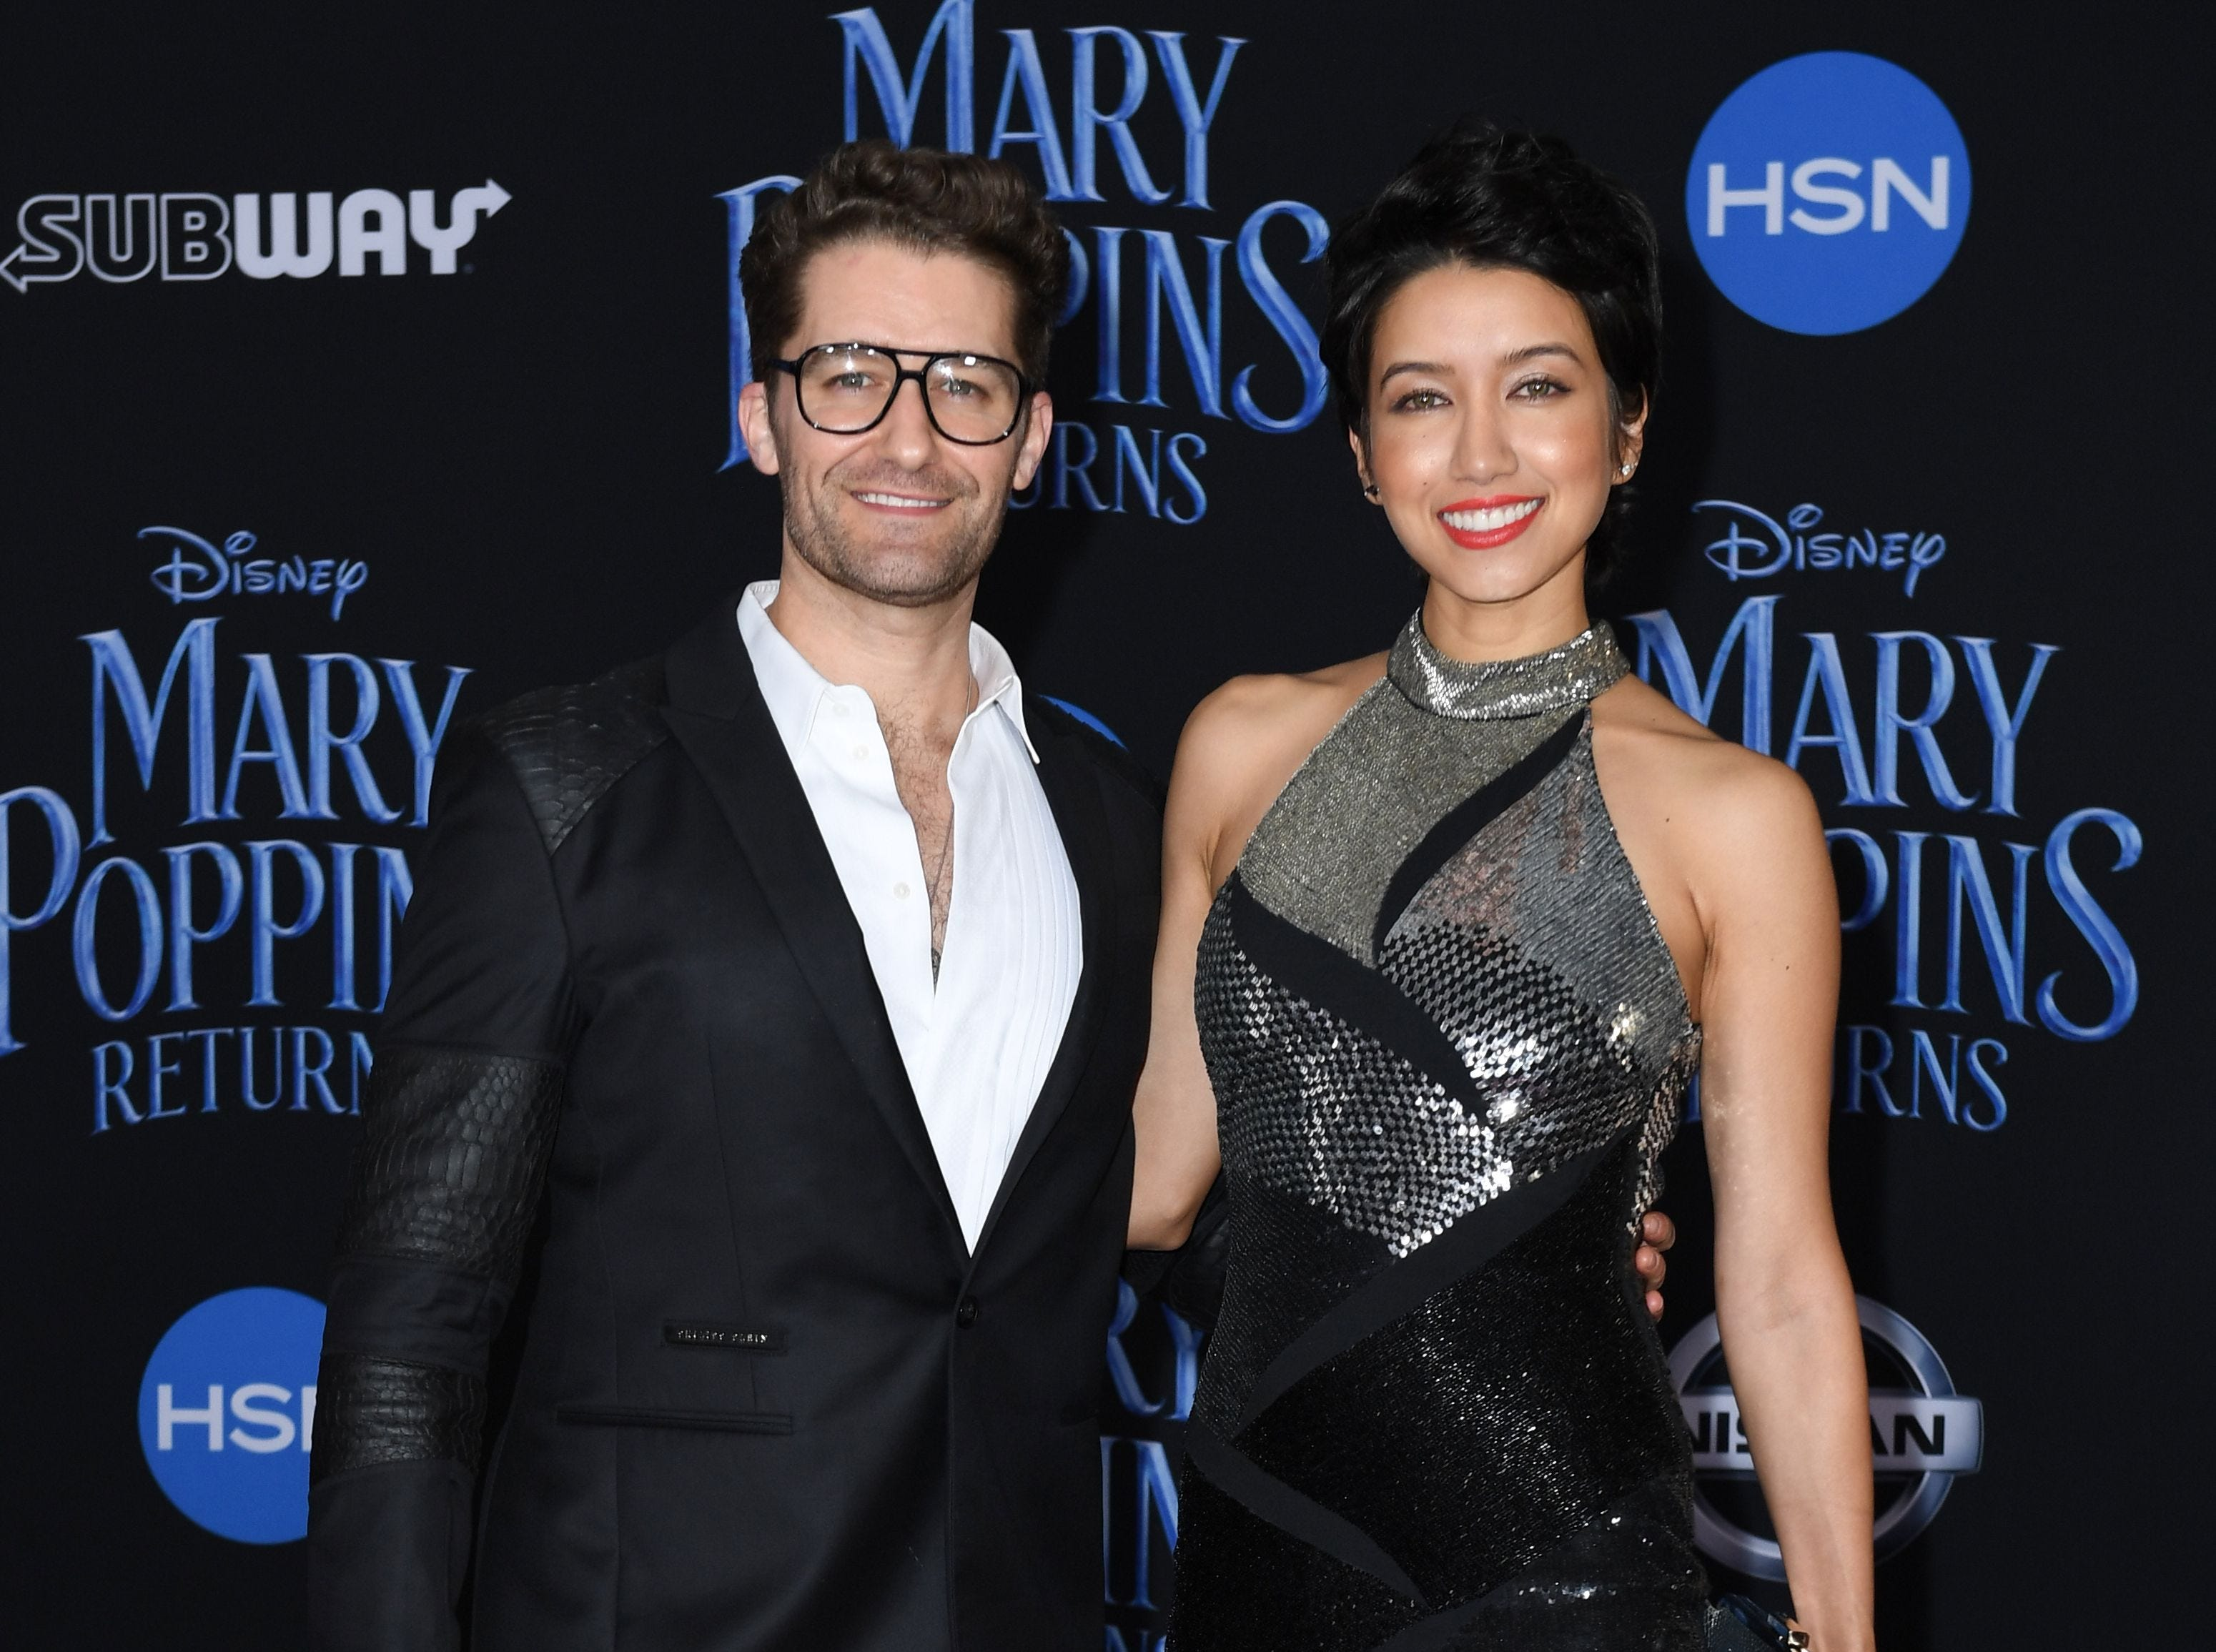 """US actor Matthew Morrison and his wife Renee Puente arrive for the world premiere of Disney's """"Mary Poppins Returns"""" at the Dolby theatre in Hollywood on November 29, 2018. (Photo by VALERIE MACON / AFP)VALERIE MACON/AFP/Getty Images ORG XMIT: 'Mary Pop ORIG FILE ID: AFP_1B81HD"""